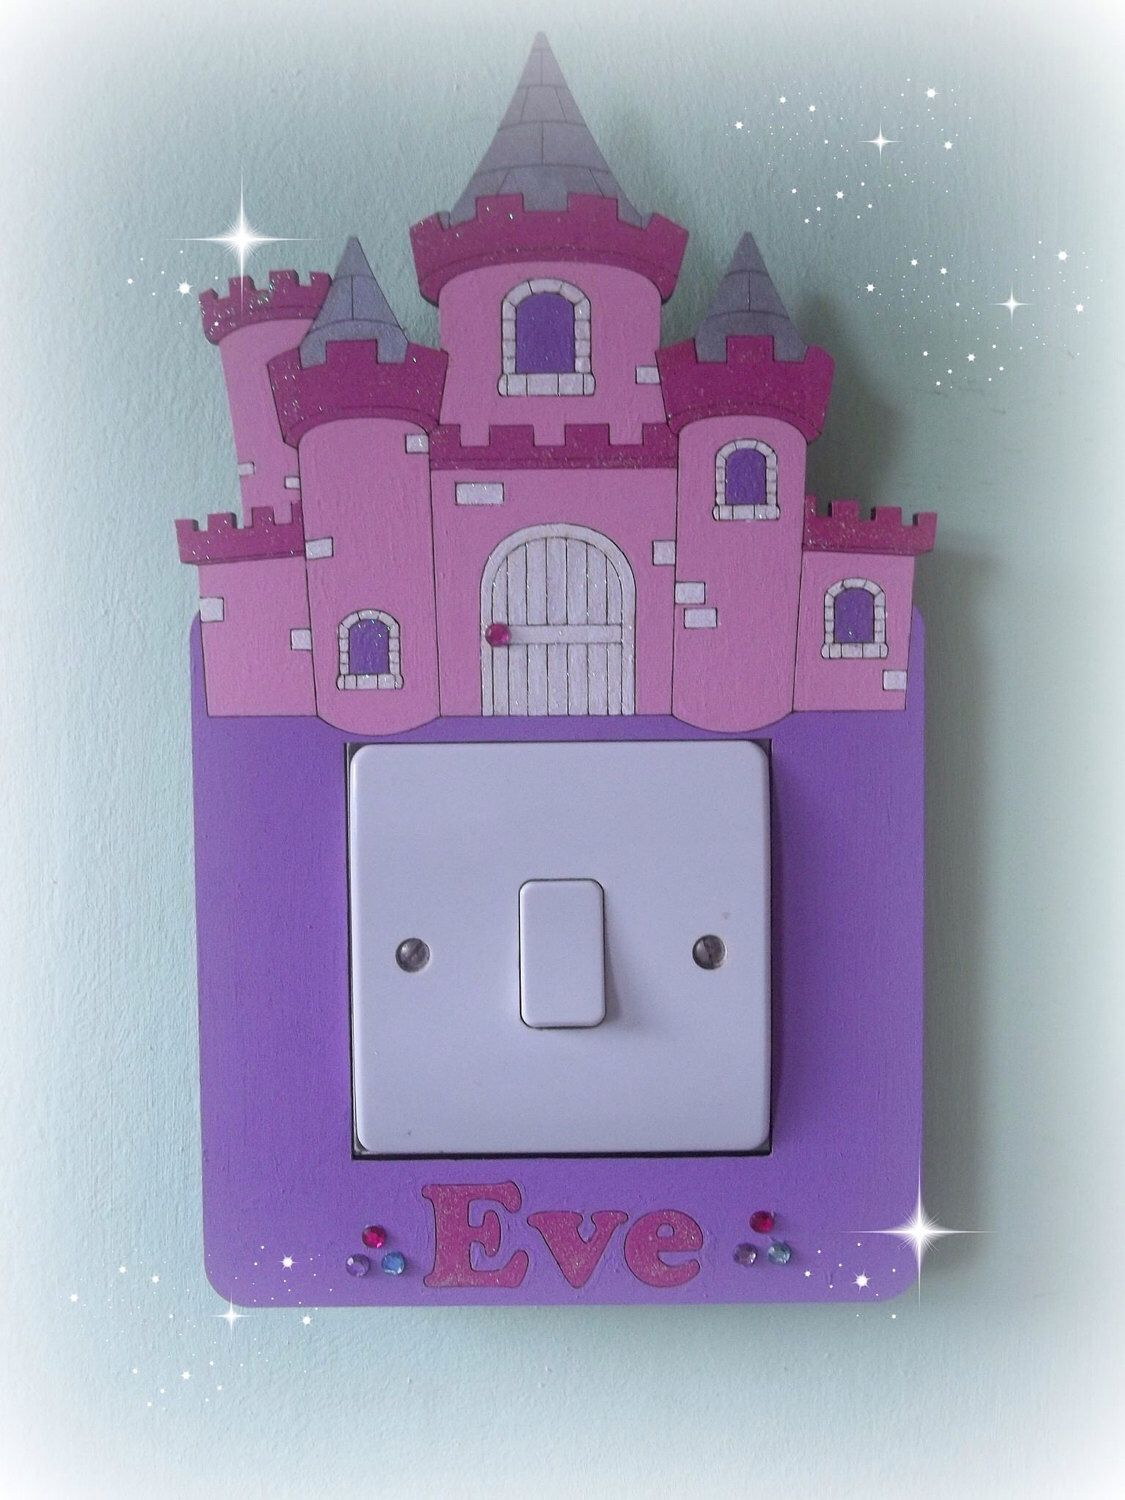 Light surround, fairy princess castle lightswitch surround, lovely girls gift, room decor, can be personalised, girls room by SweetlittleThings96 on Etsy https://www.etsy.com/uk/listing/508275245/light-surround-fairy-princess-castle